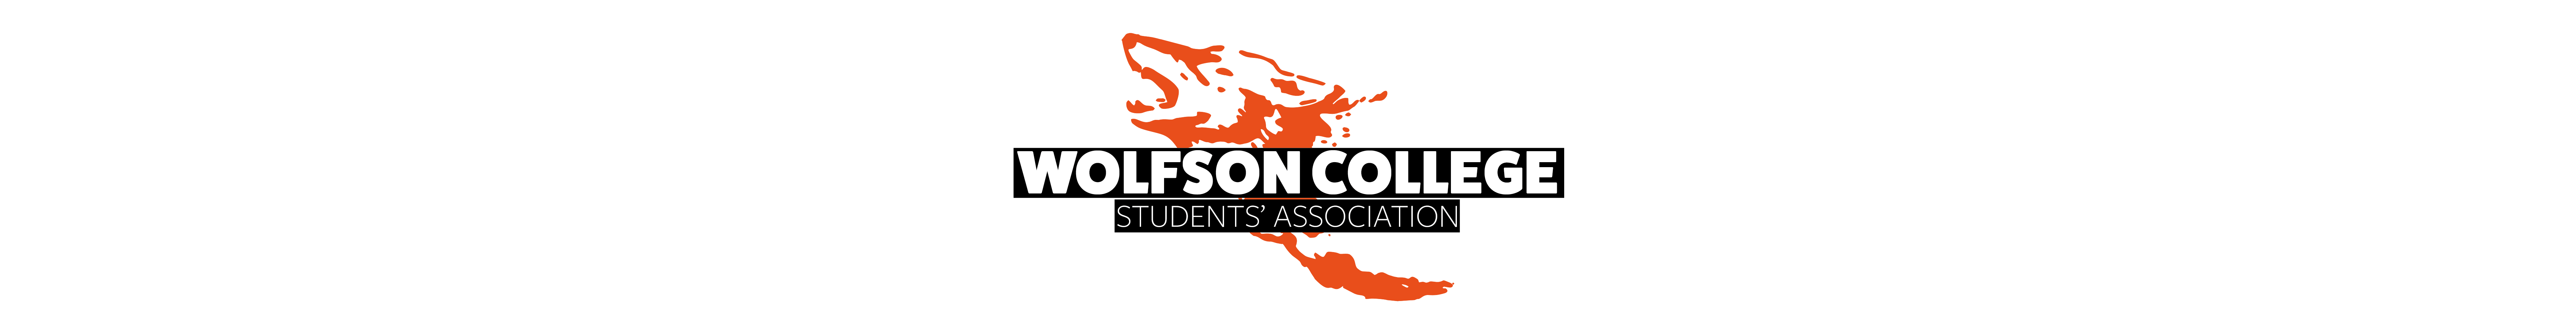 Wolfson College Students' Association Logo